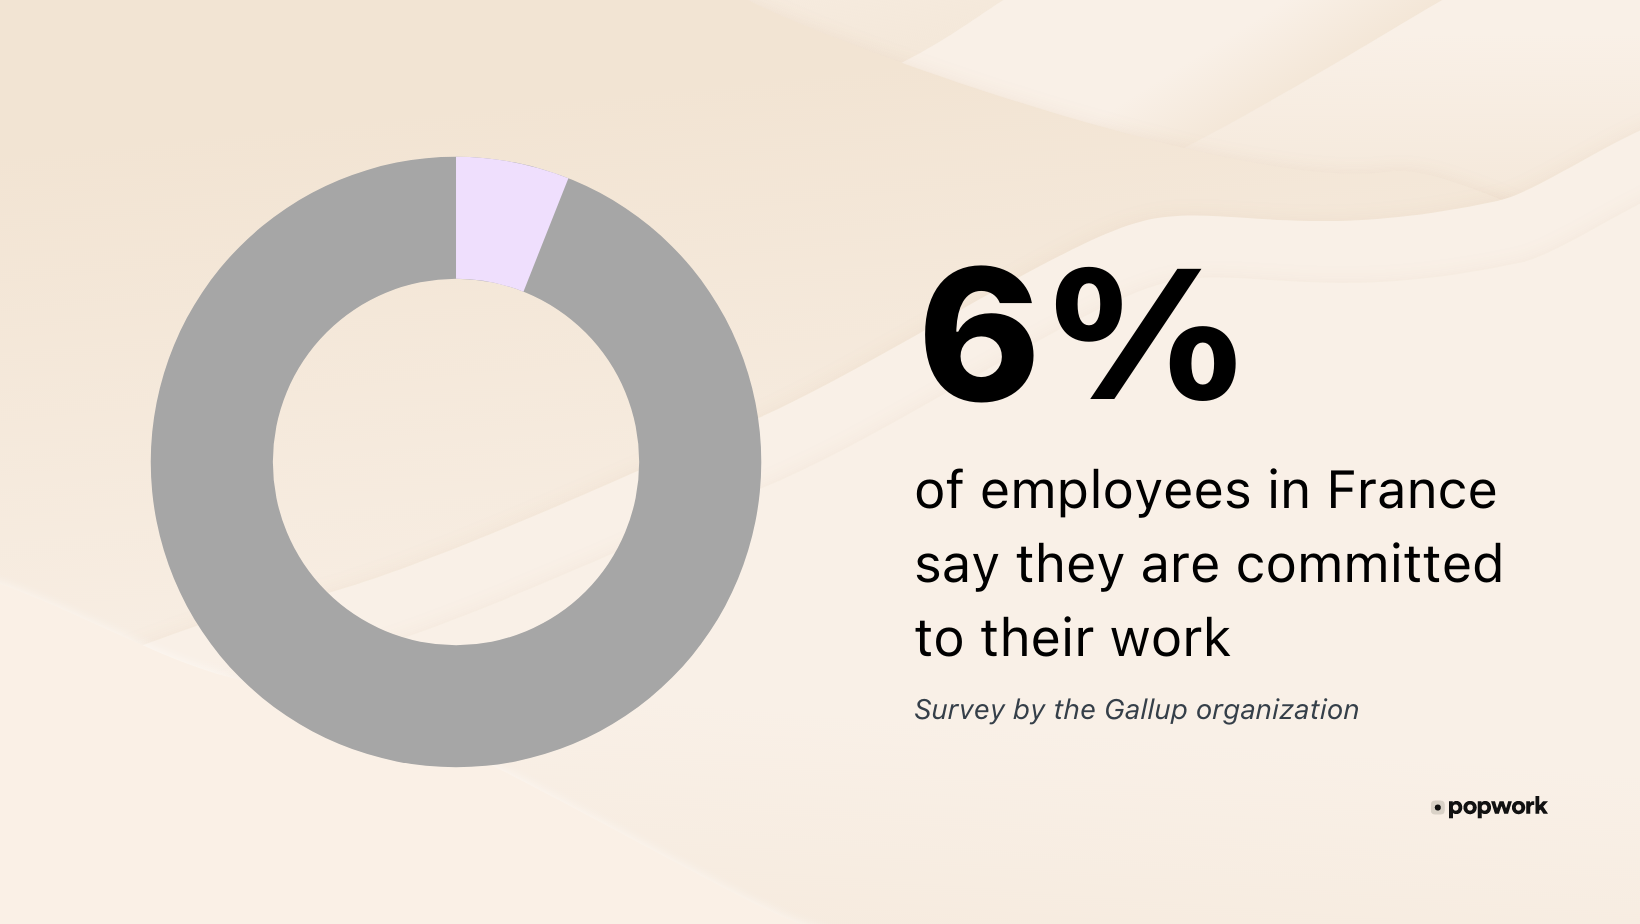 """Diagram : """"Only 6% of french employees say they are committed to their work"""" Gallup org survey - Popwork"""